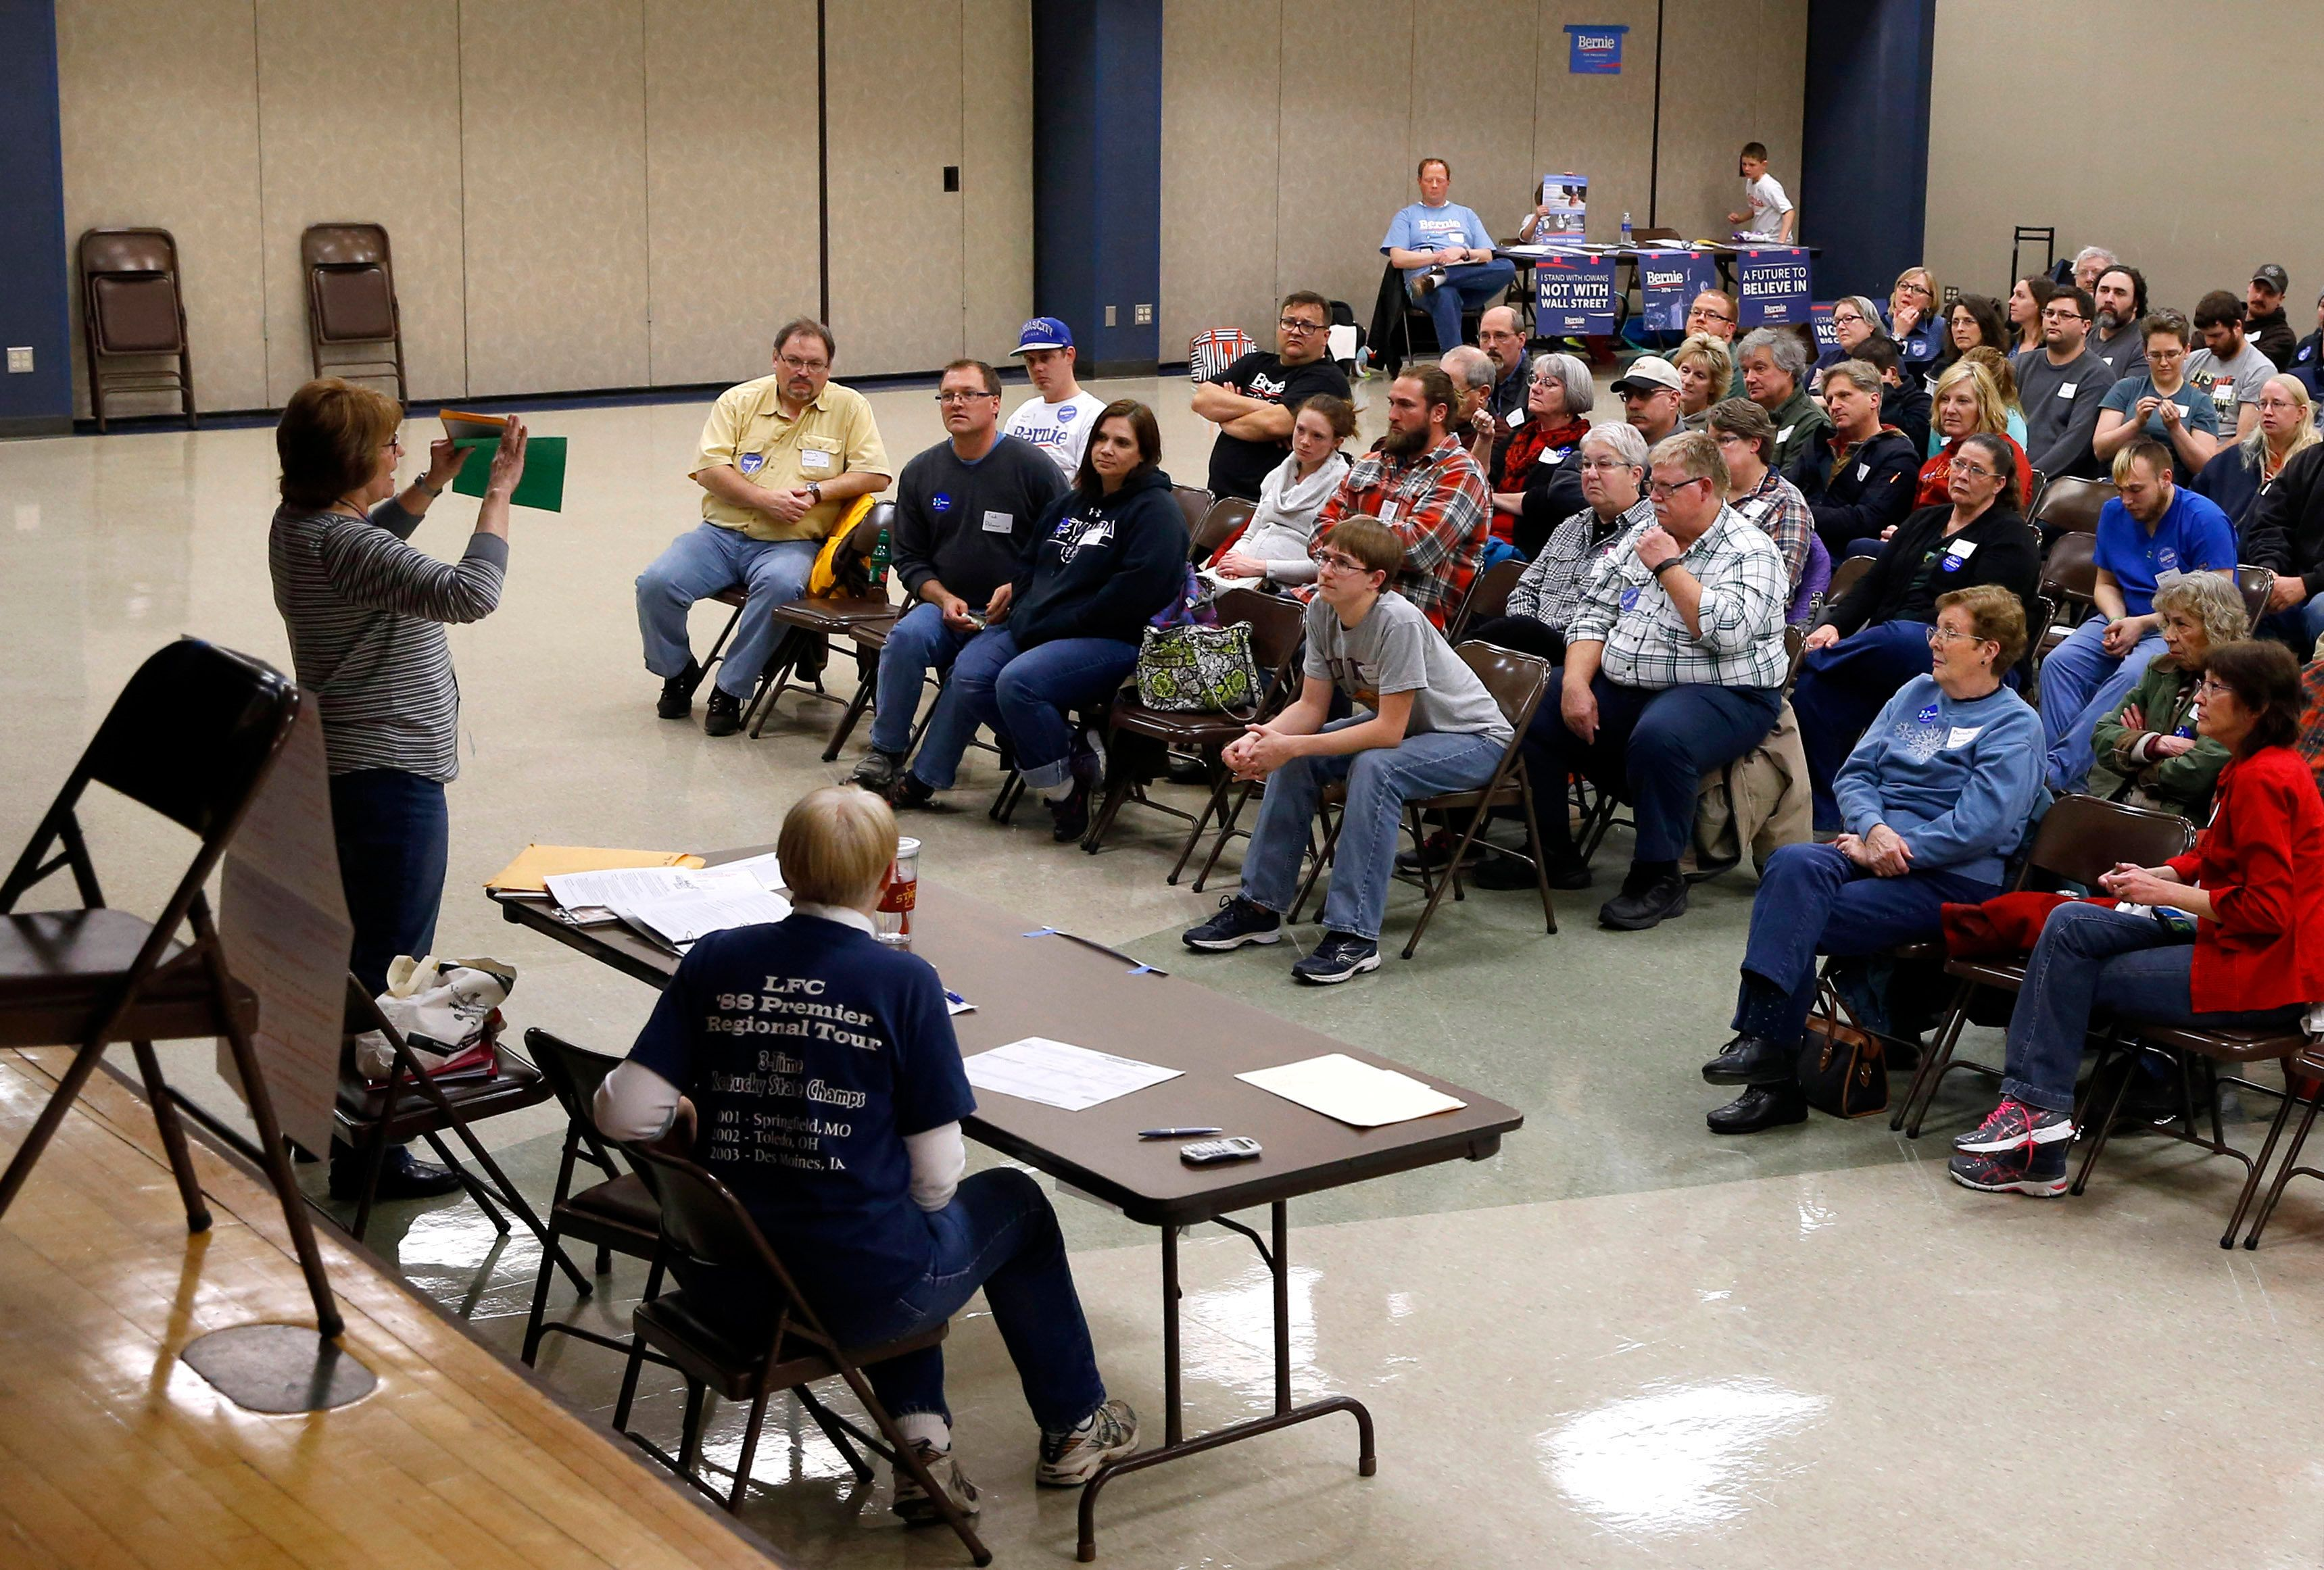 Voters listen to instructions during a Democratic party caucus in Nevada, Iowa, Monday, Feb. 1, 2016. (AP Photo/Patrick Semansky)